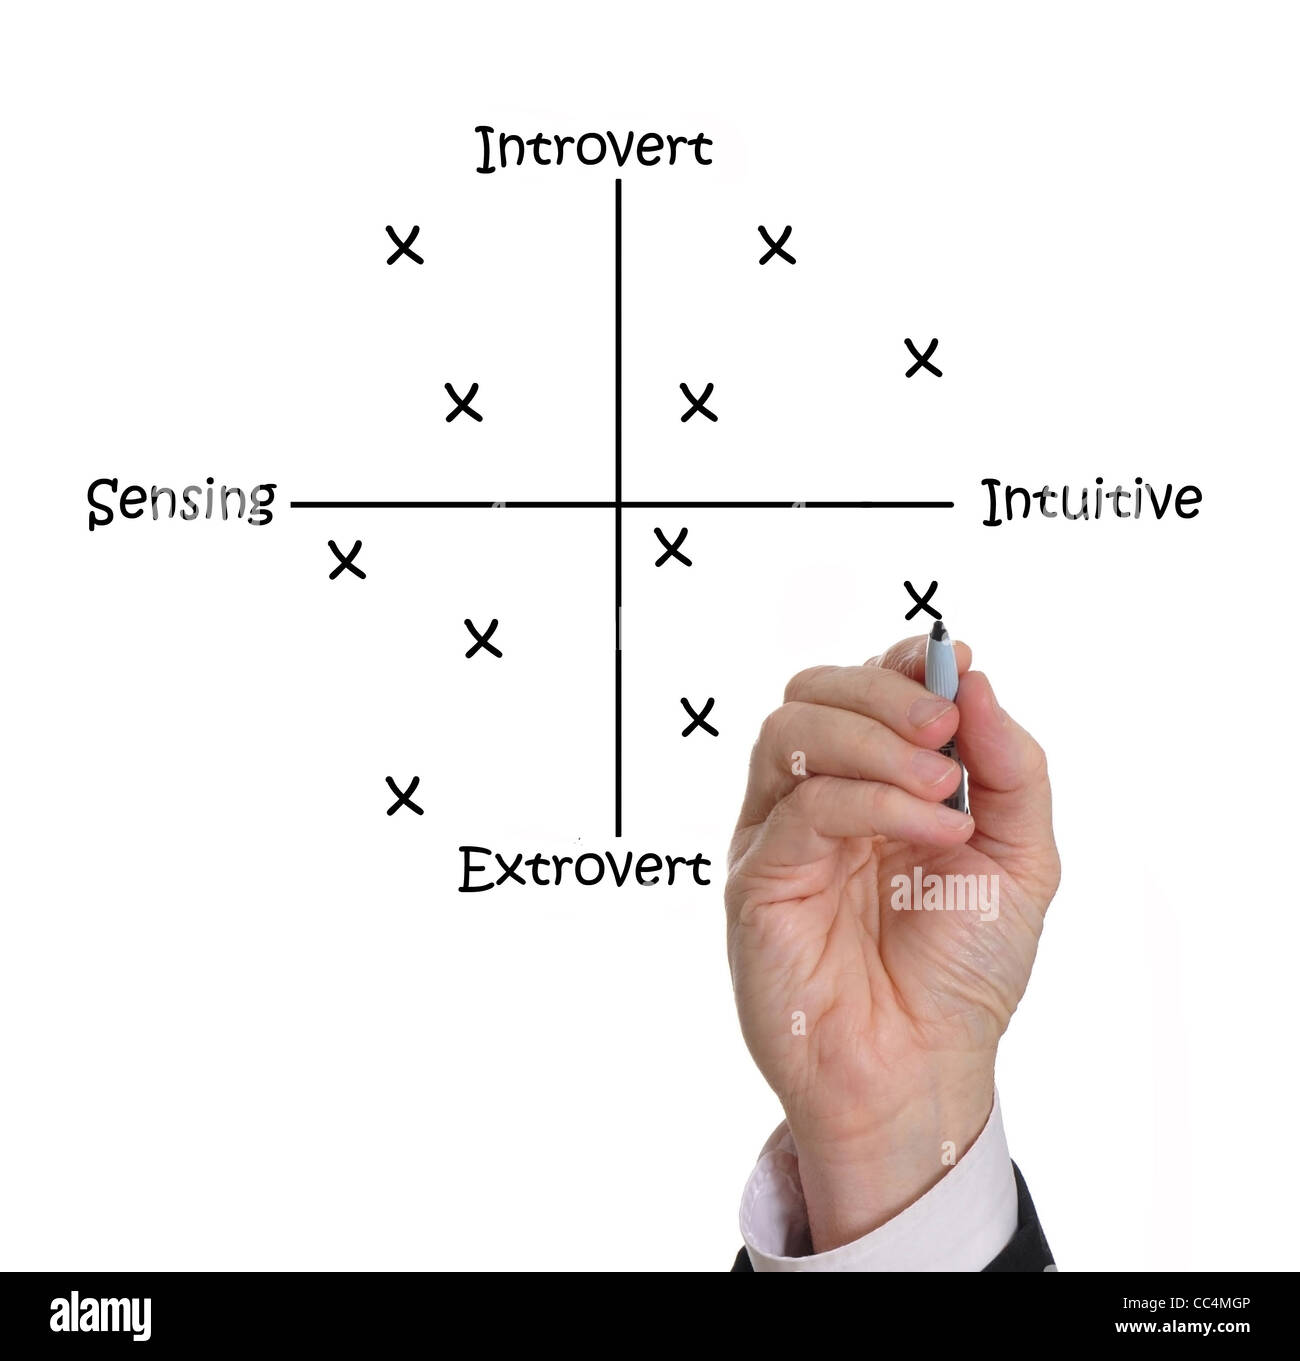 Male executive drawing results of a personality test on a whiteboard Stock Photo